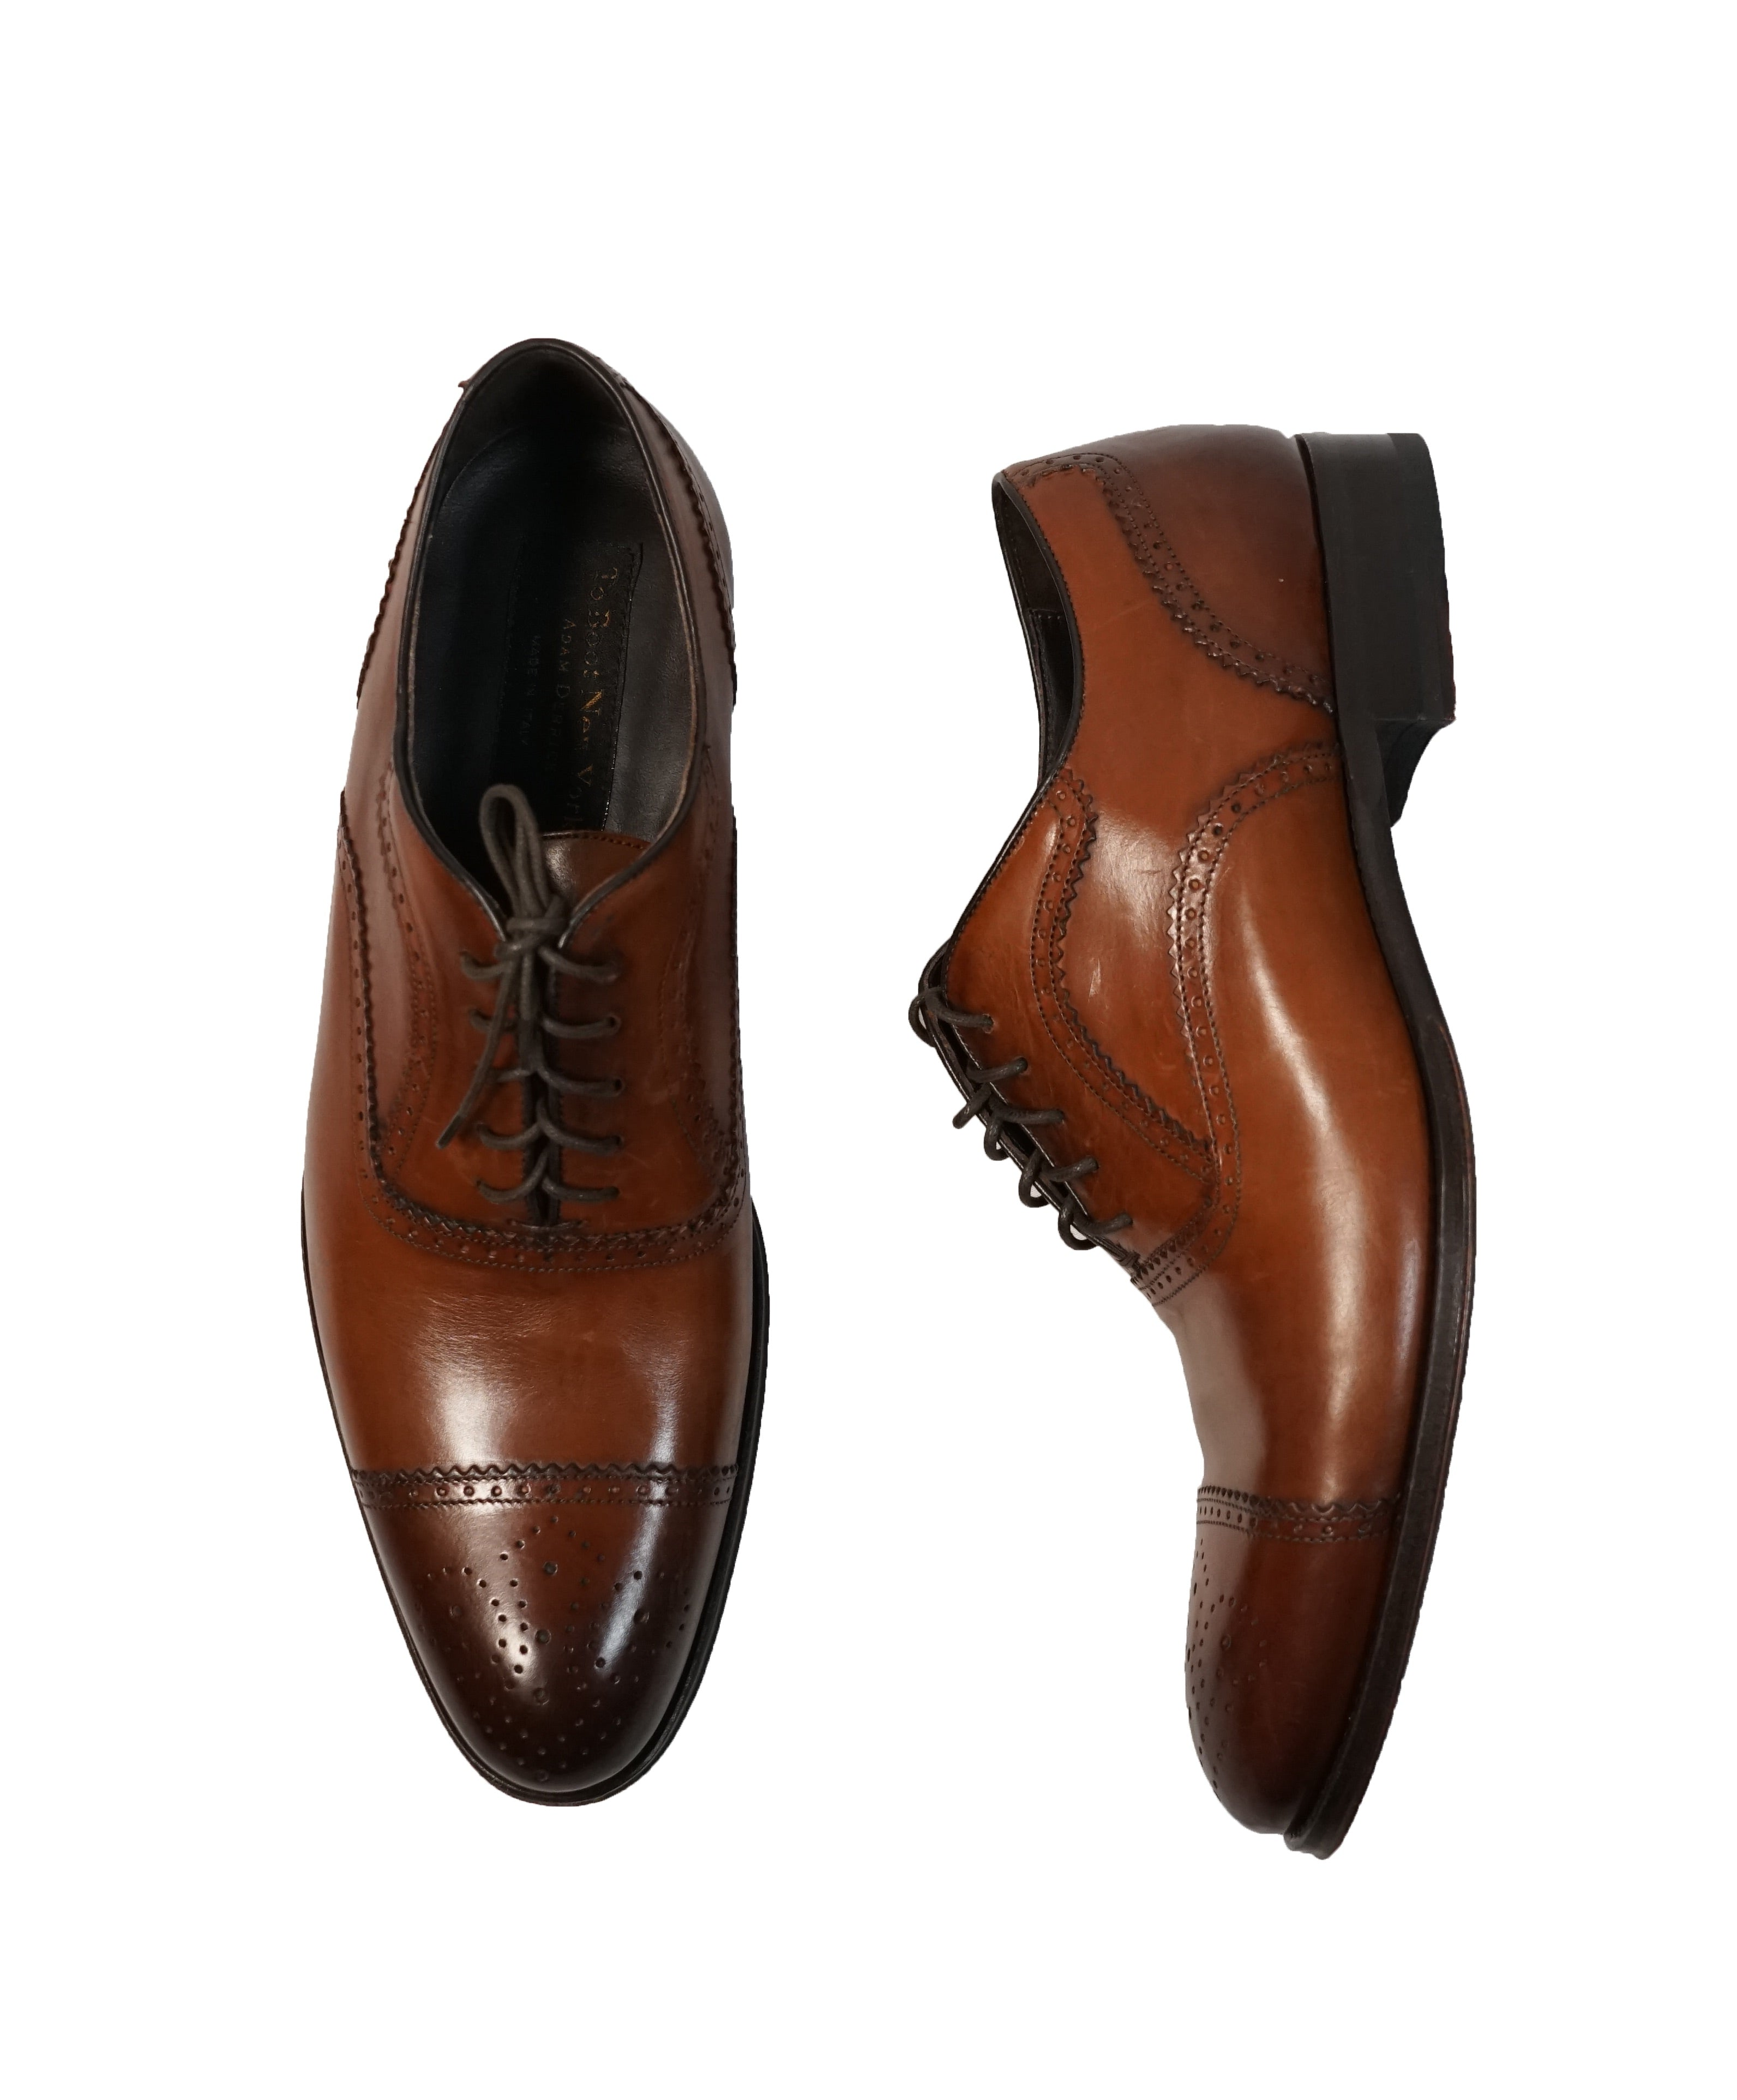 "TO BOOT NEW YORK -""Capote"" Cap-toe Brown Oxfords - 10"